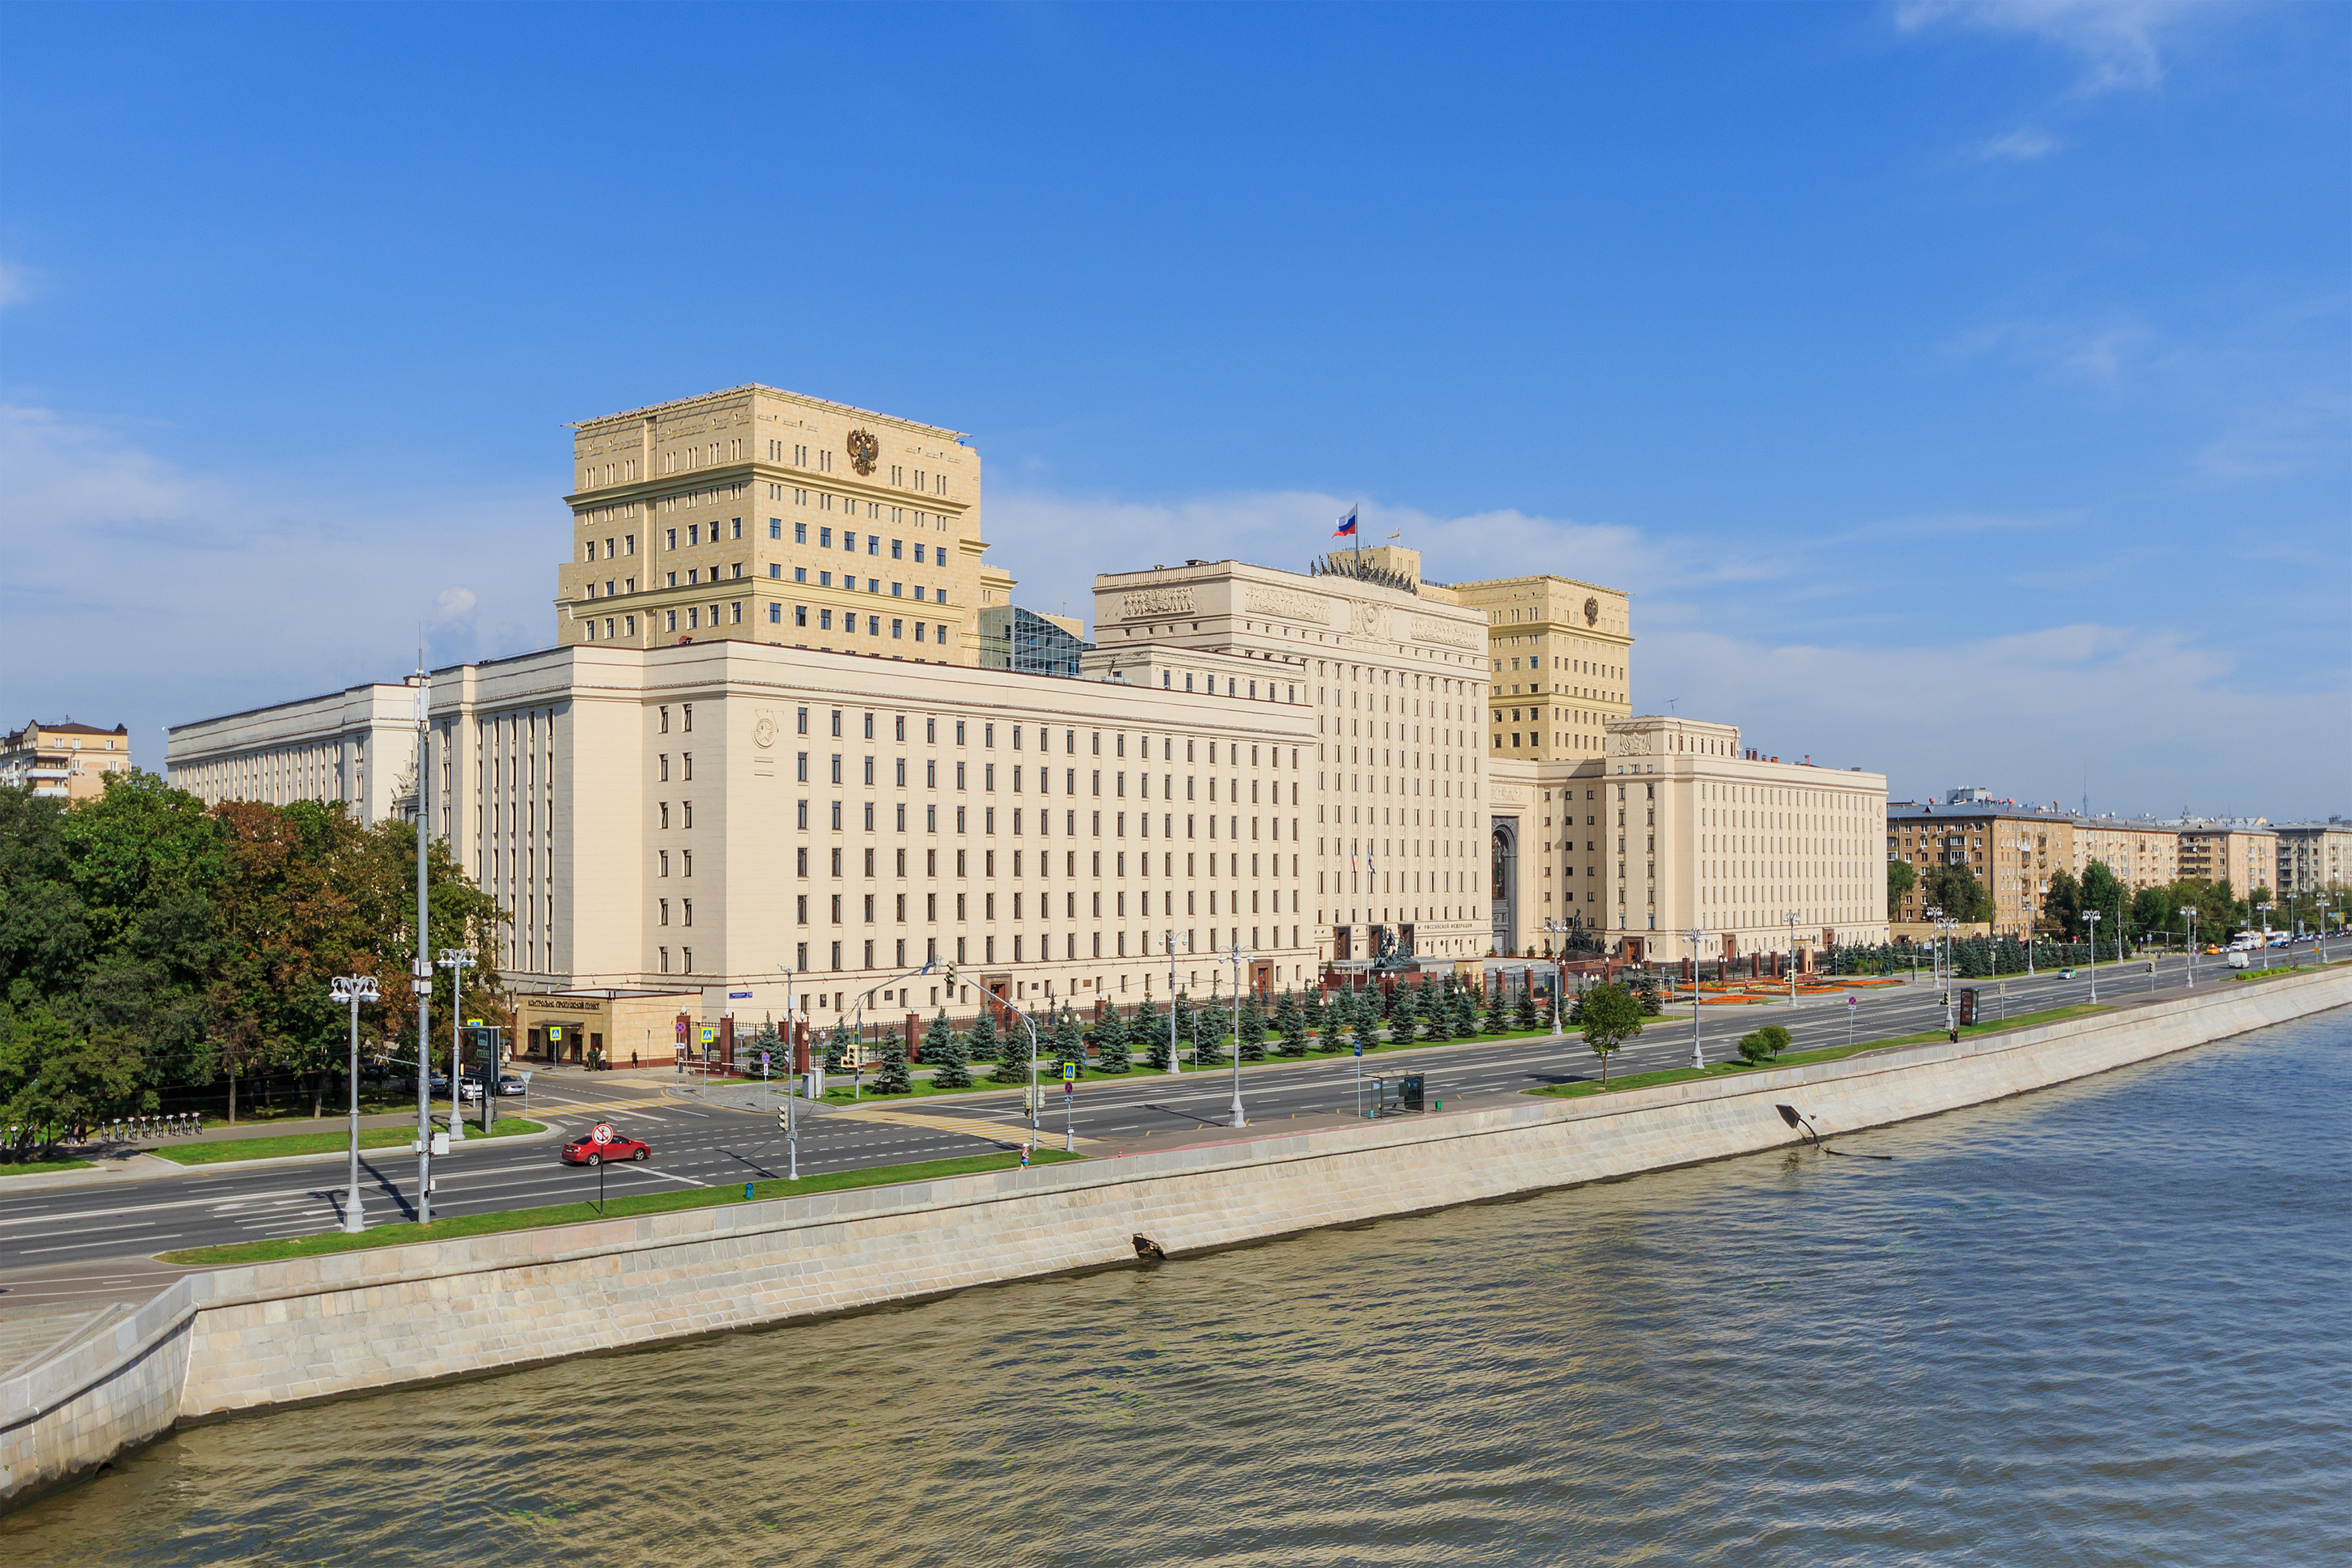 Moscow_Frunzenskaya_Embankment_at_Pushkinsky_Bridge_08-2016.jpg